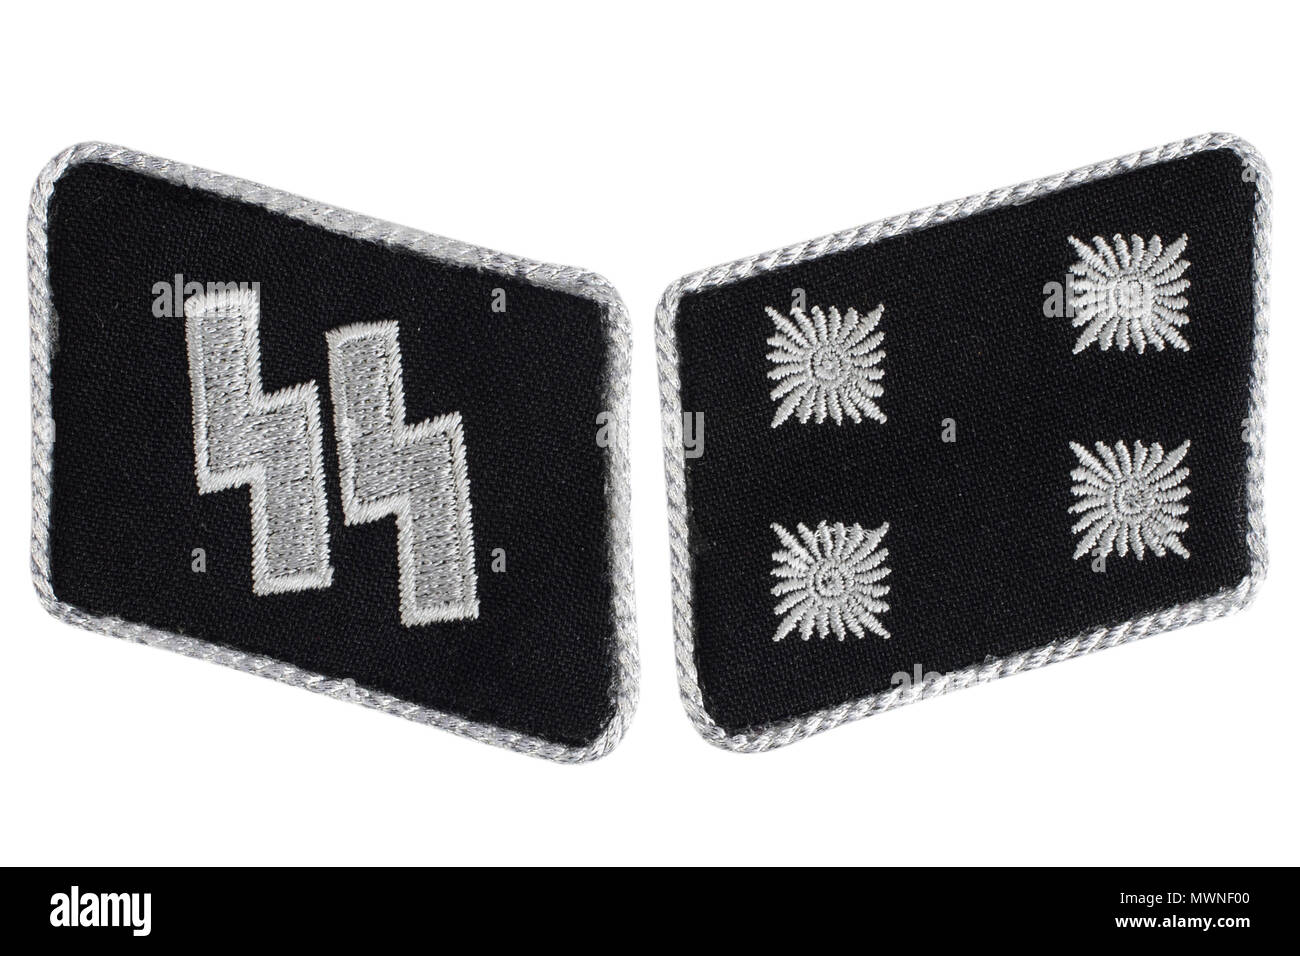 Ww2 German Waffen Ss Military Insignia Isolated On White Stock Photo